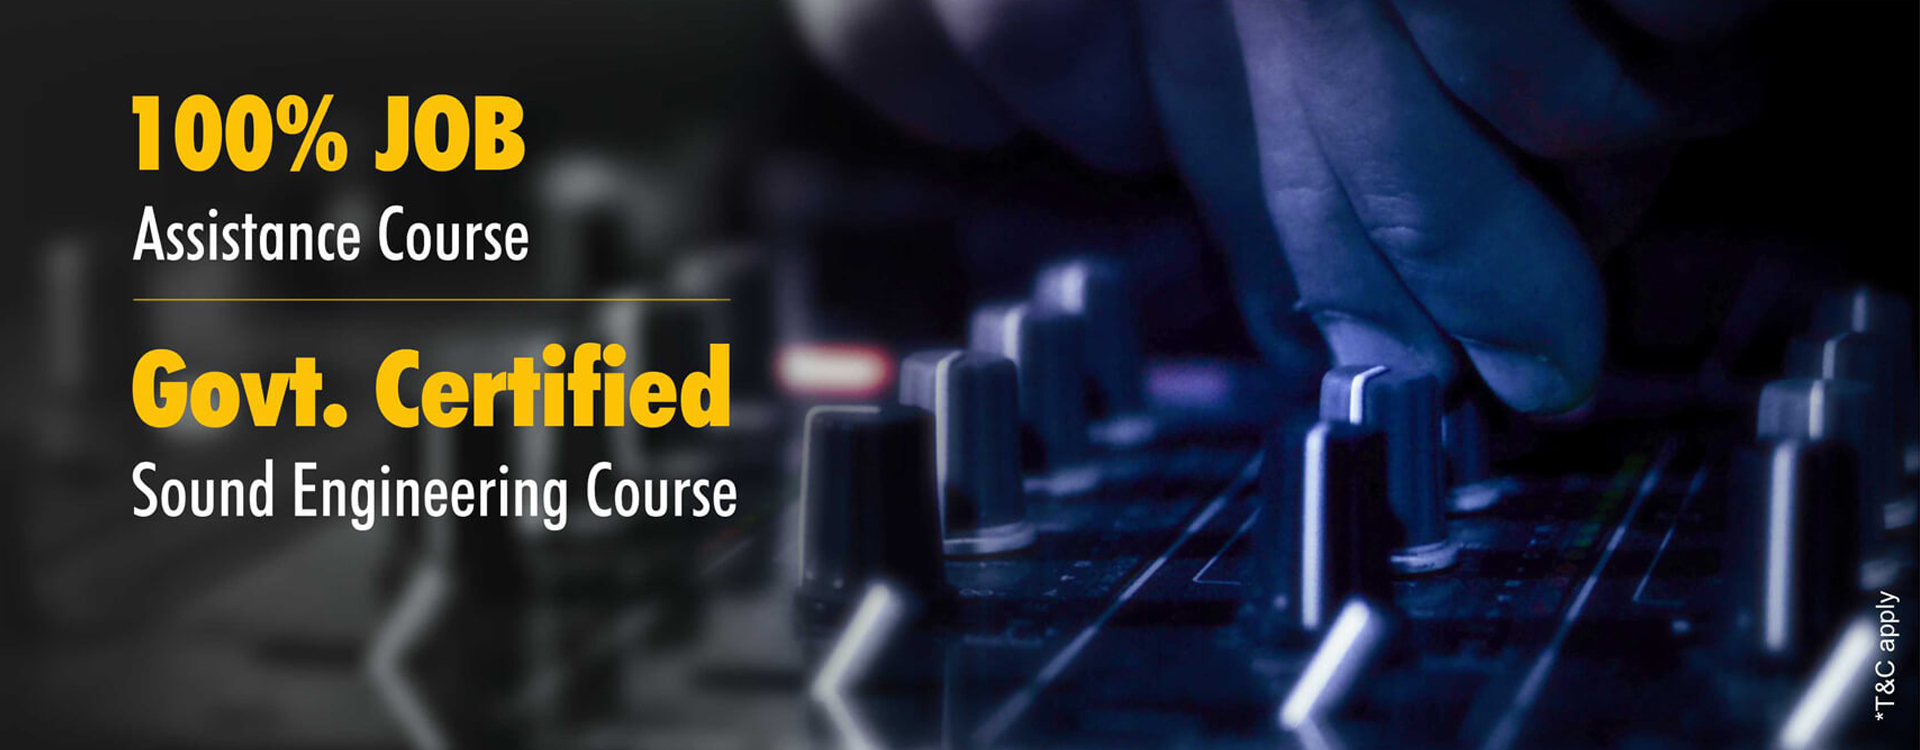 11th Anniversary Offer | Early Bird Offer | Enroll and save Big